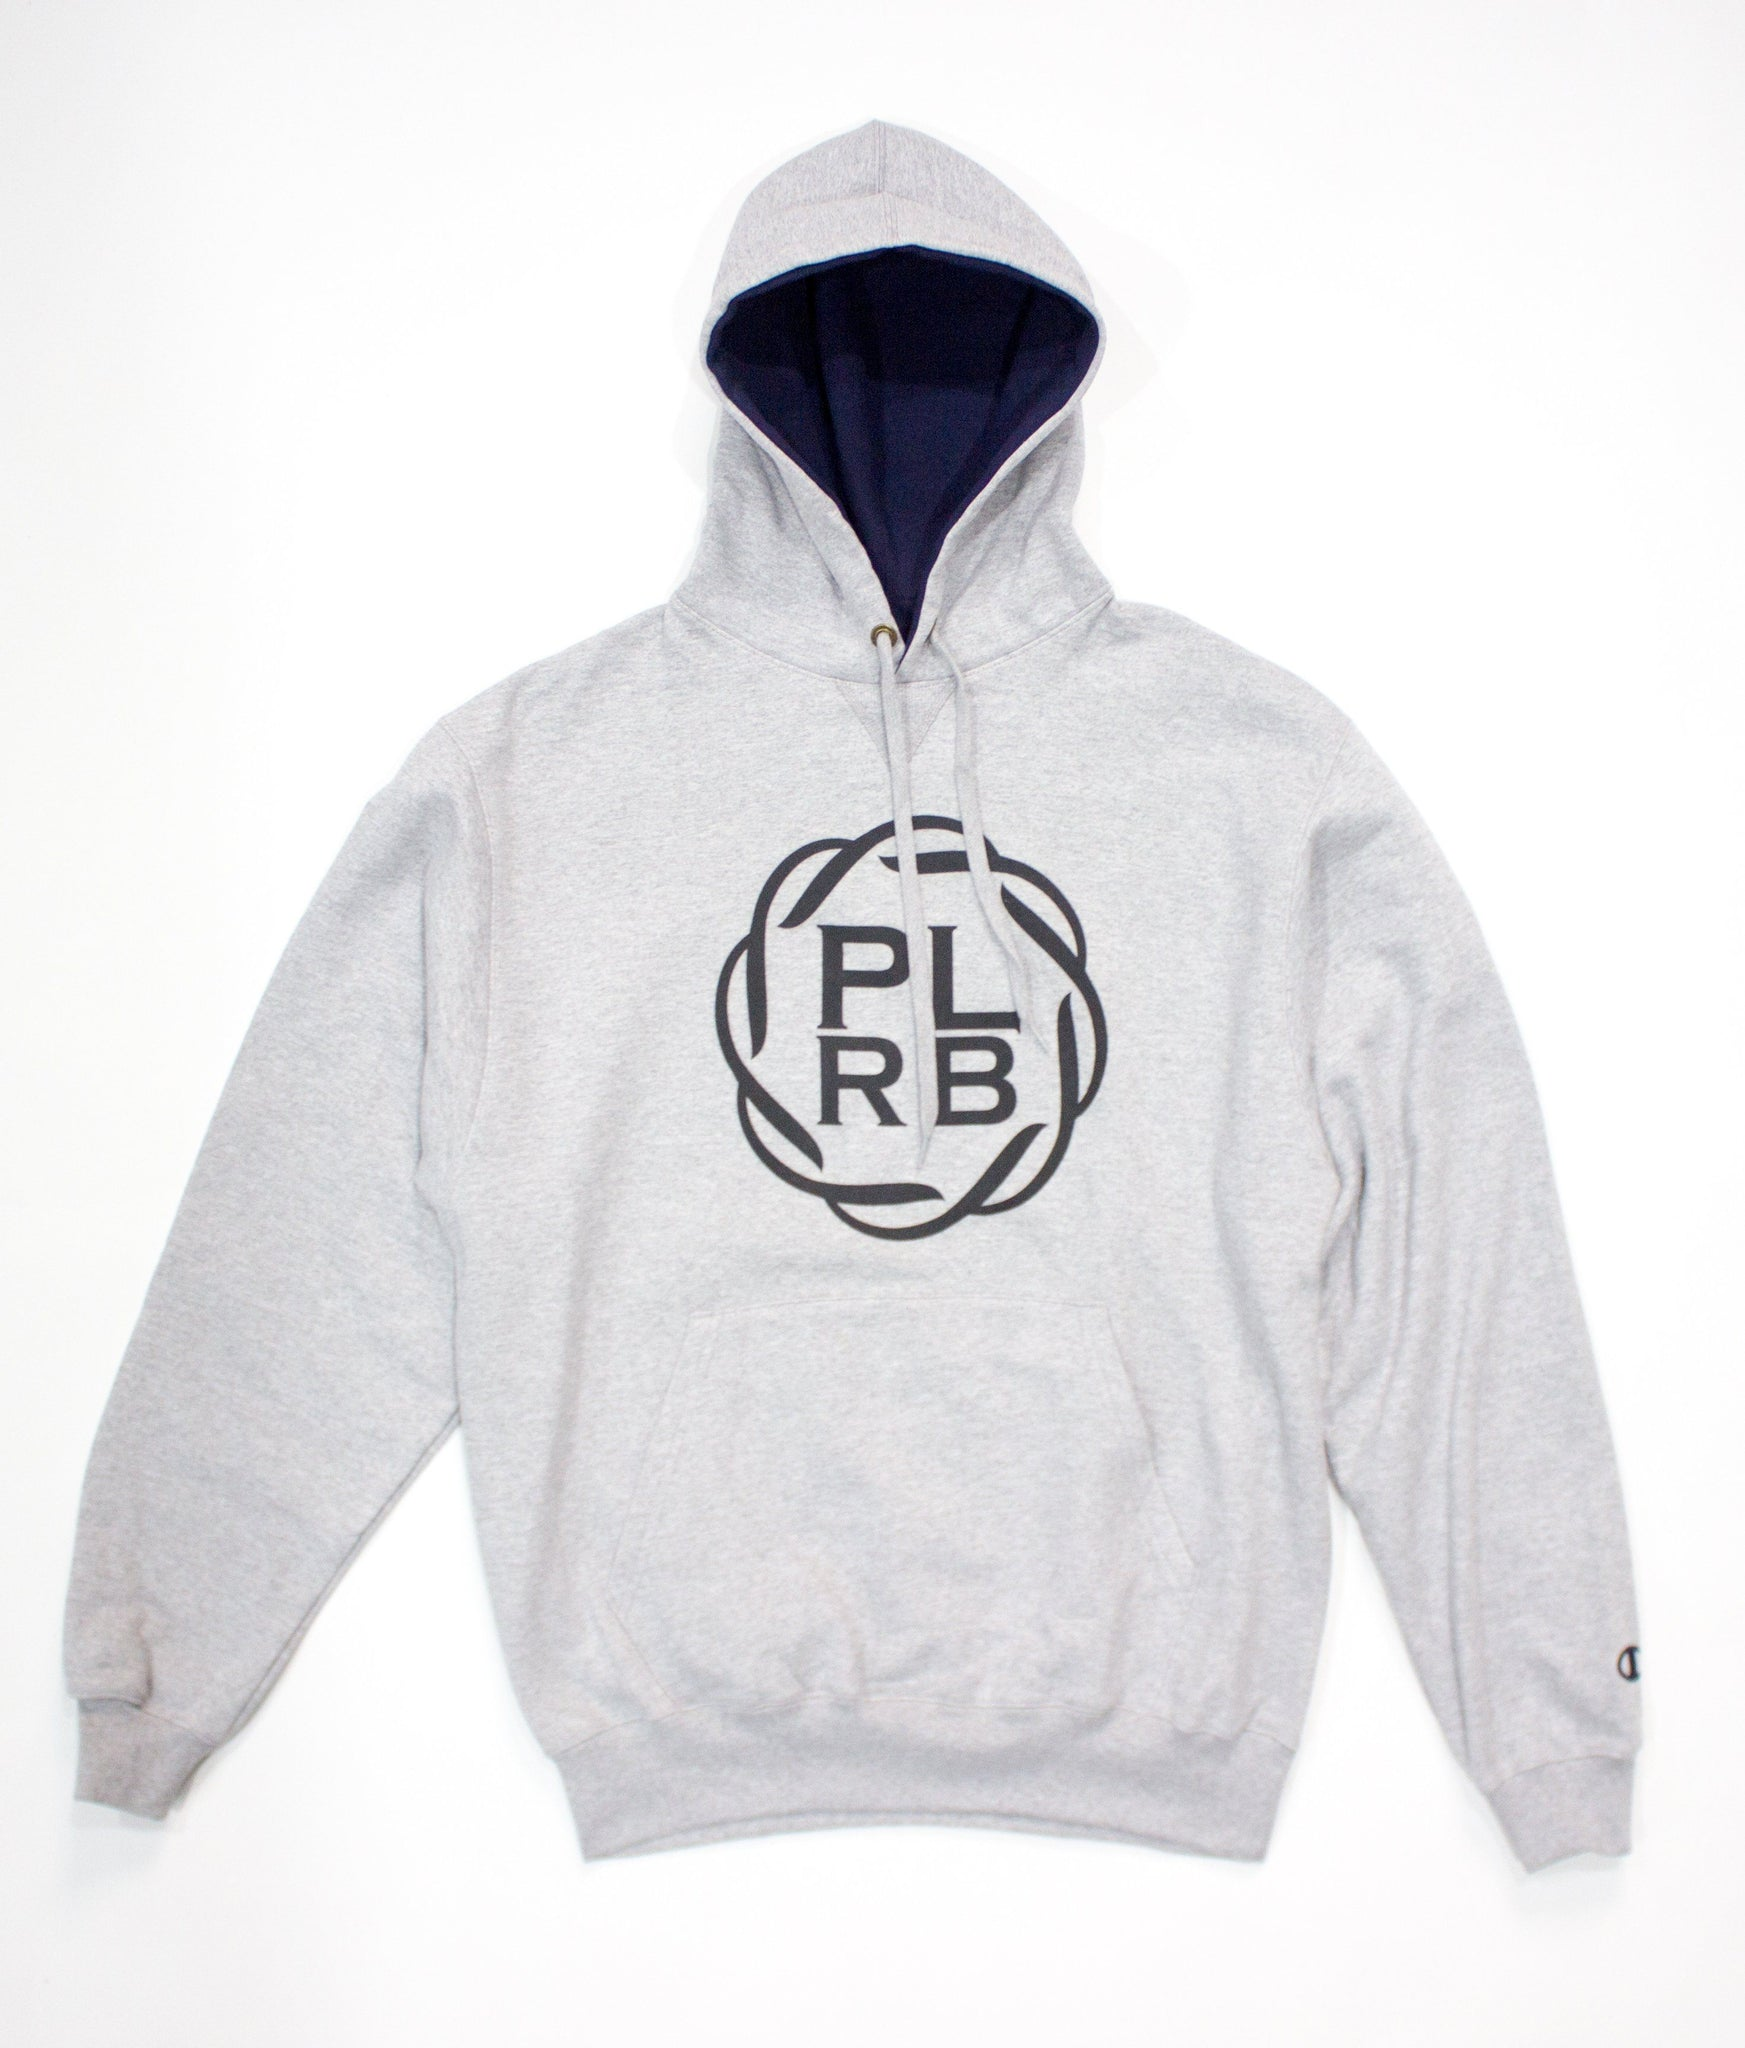 CHAMPION BIG FACE PLRB OVERSIZED HOODIE IN STEEL | Poor Little Rich Boy Clothing